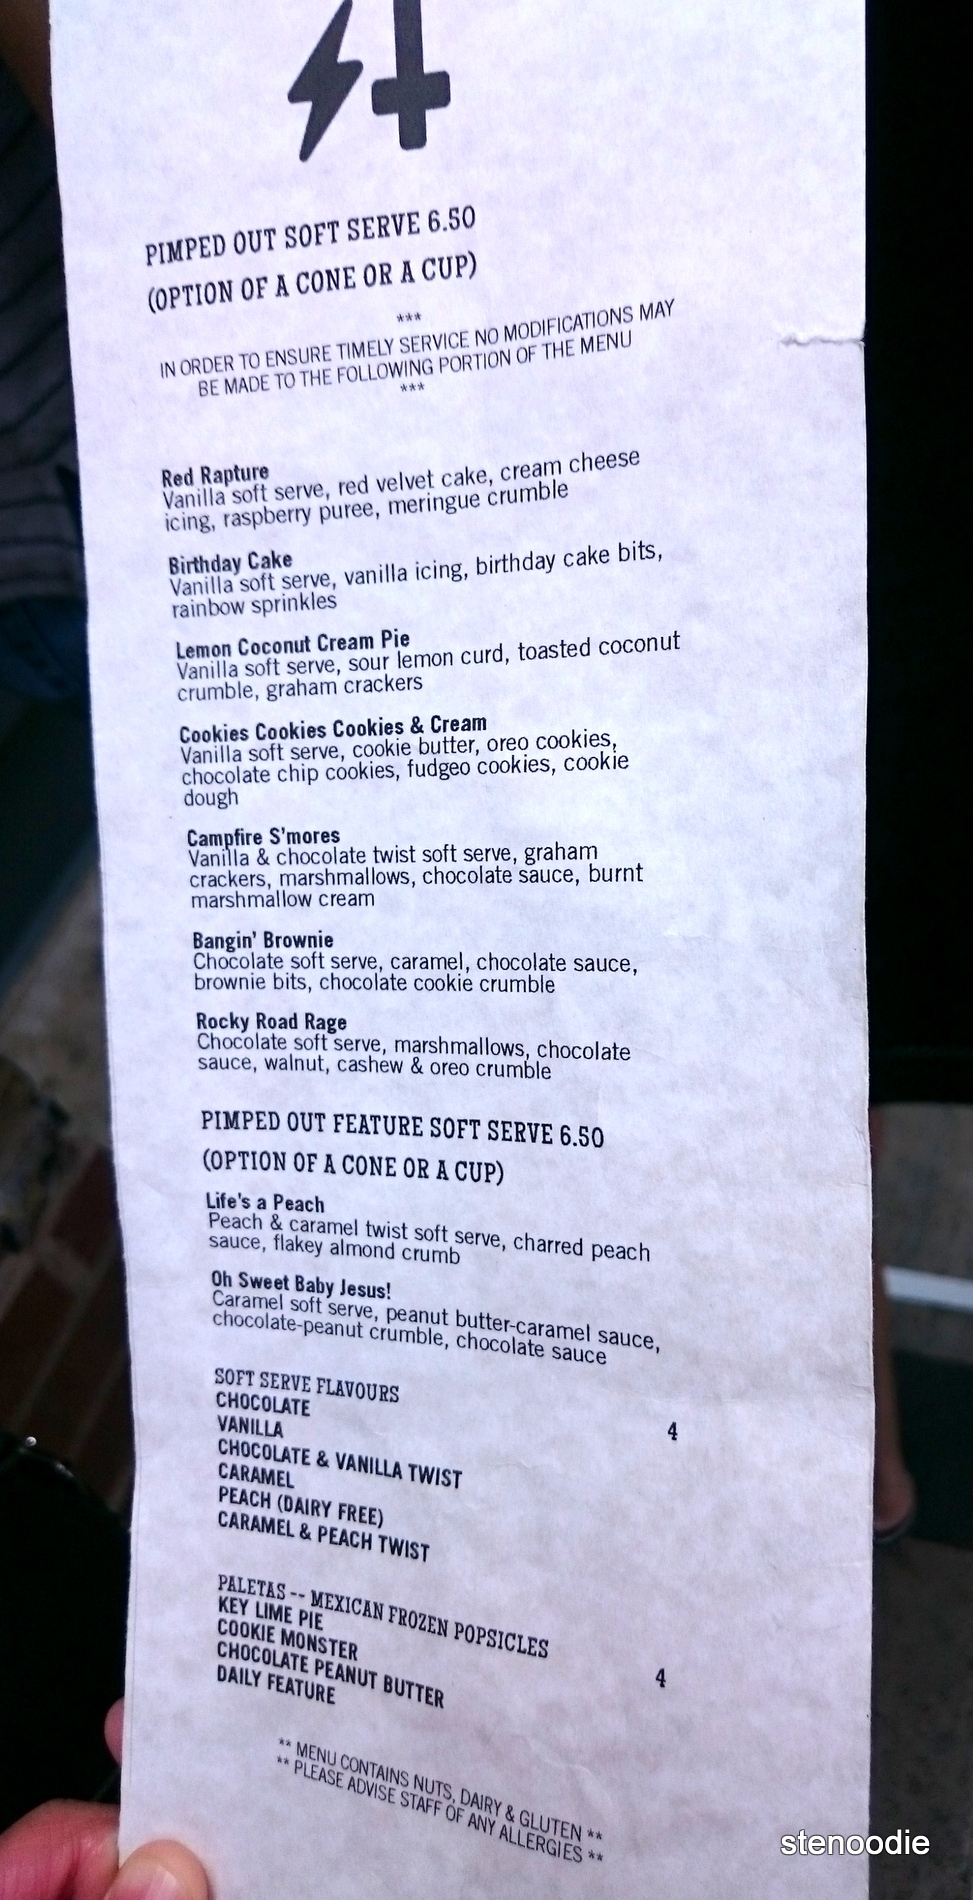 Sweet Jesus ice cream menu and prices